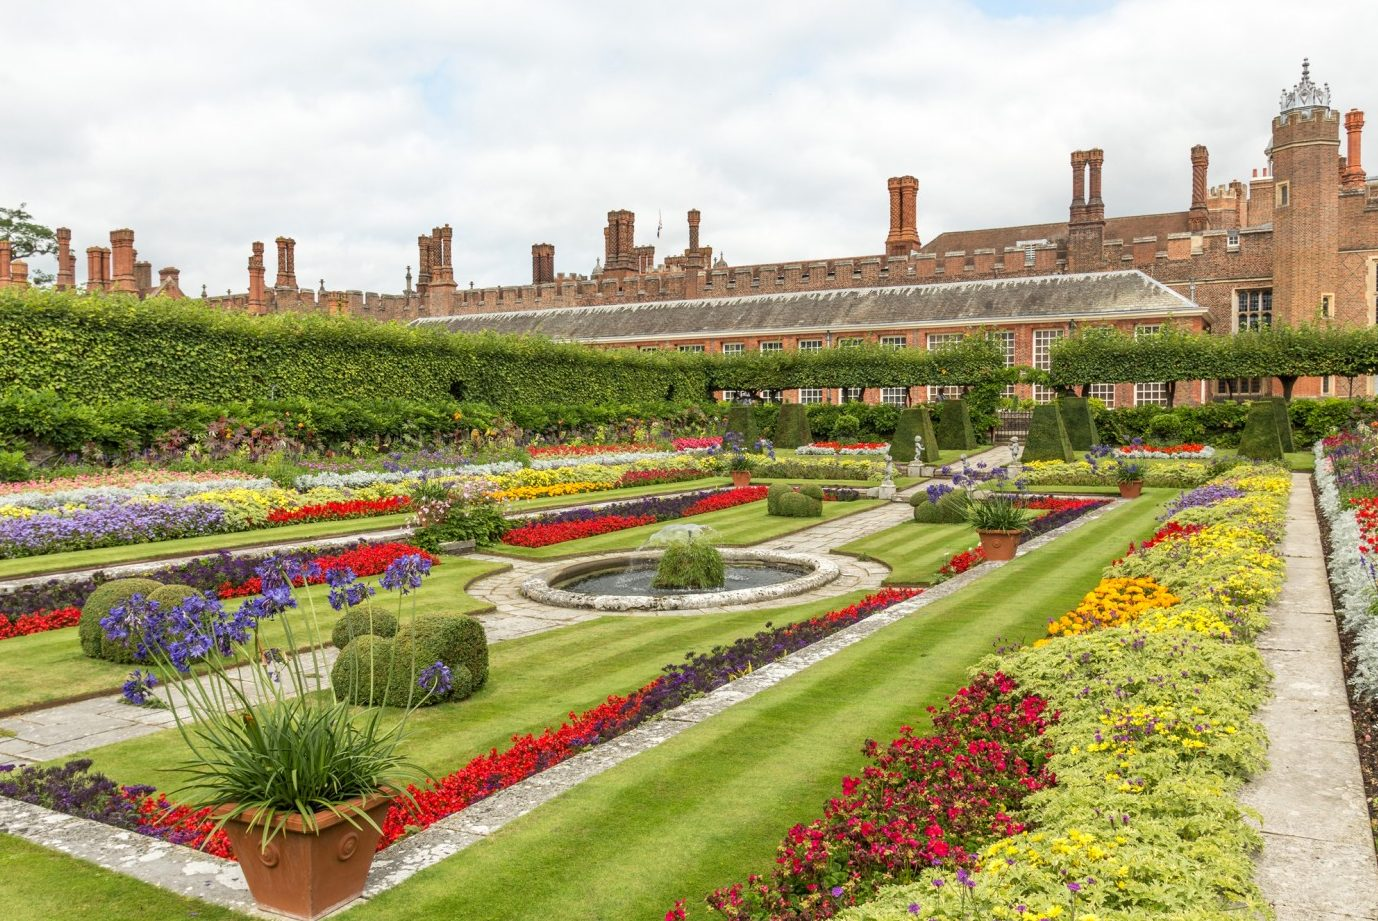 Hampton court flower show greatdays group travel - Hampton court flower show ...